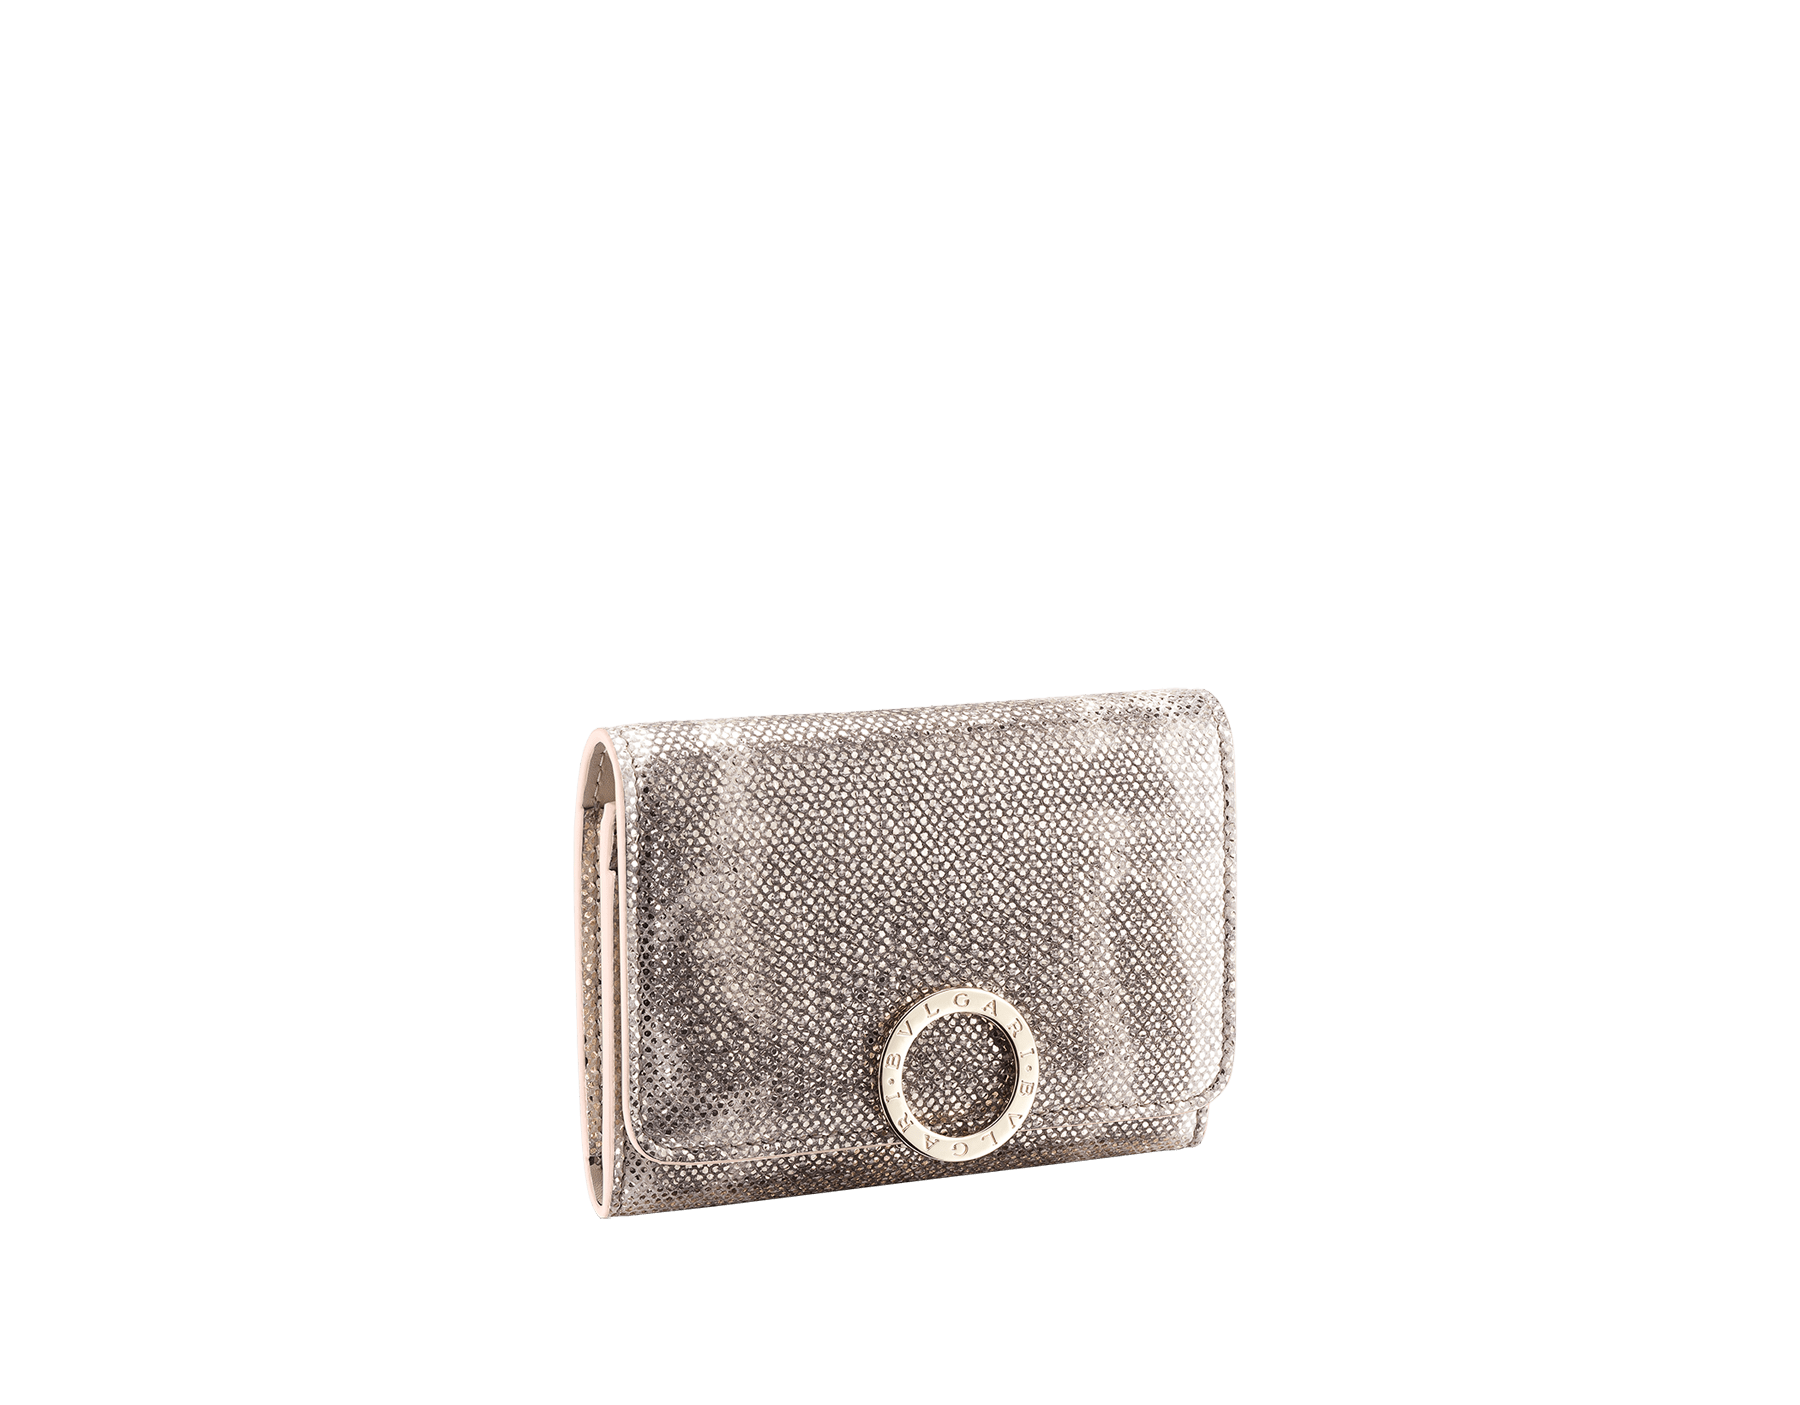 Business card holder in emerald green shiny karung skin and amethyst purple nappa. Iconic brass light gold plated clip featuring the BVLGARI BVLGARI motif. 579-BC-HOLDER-MK image 1